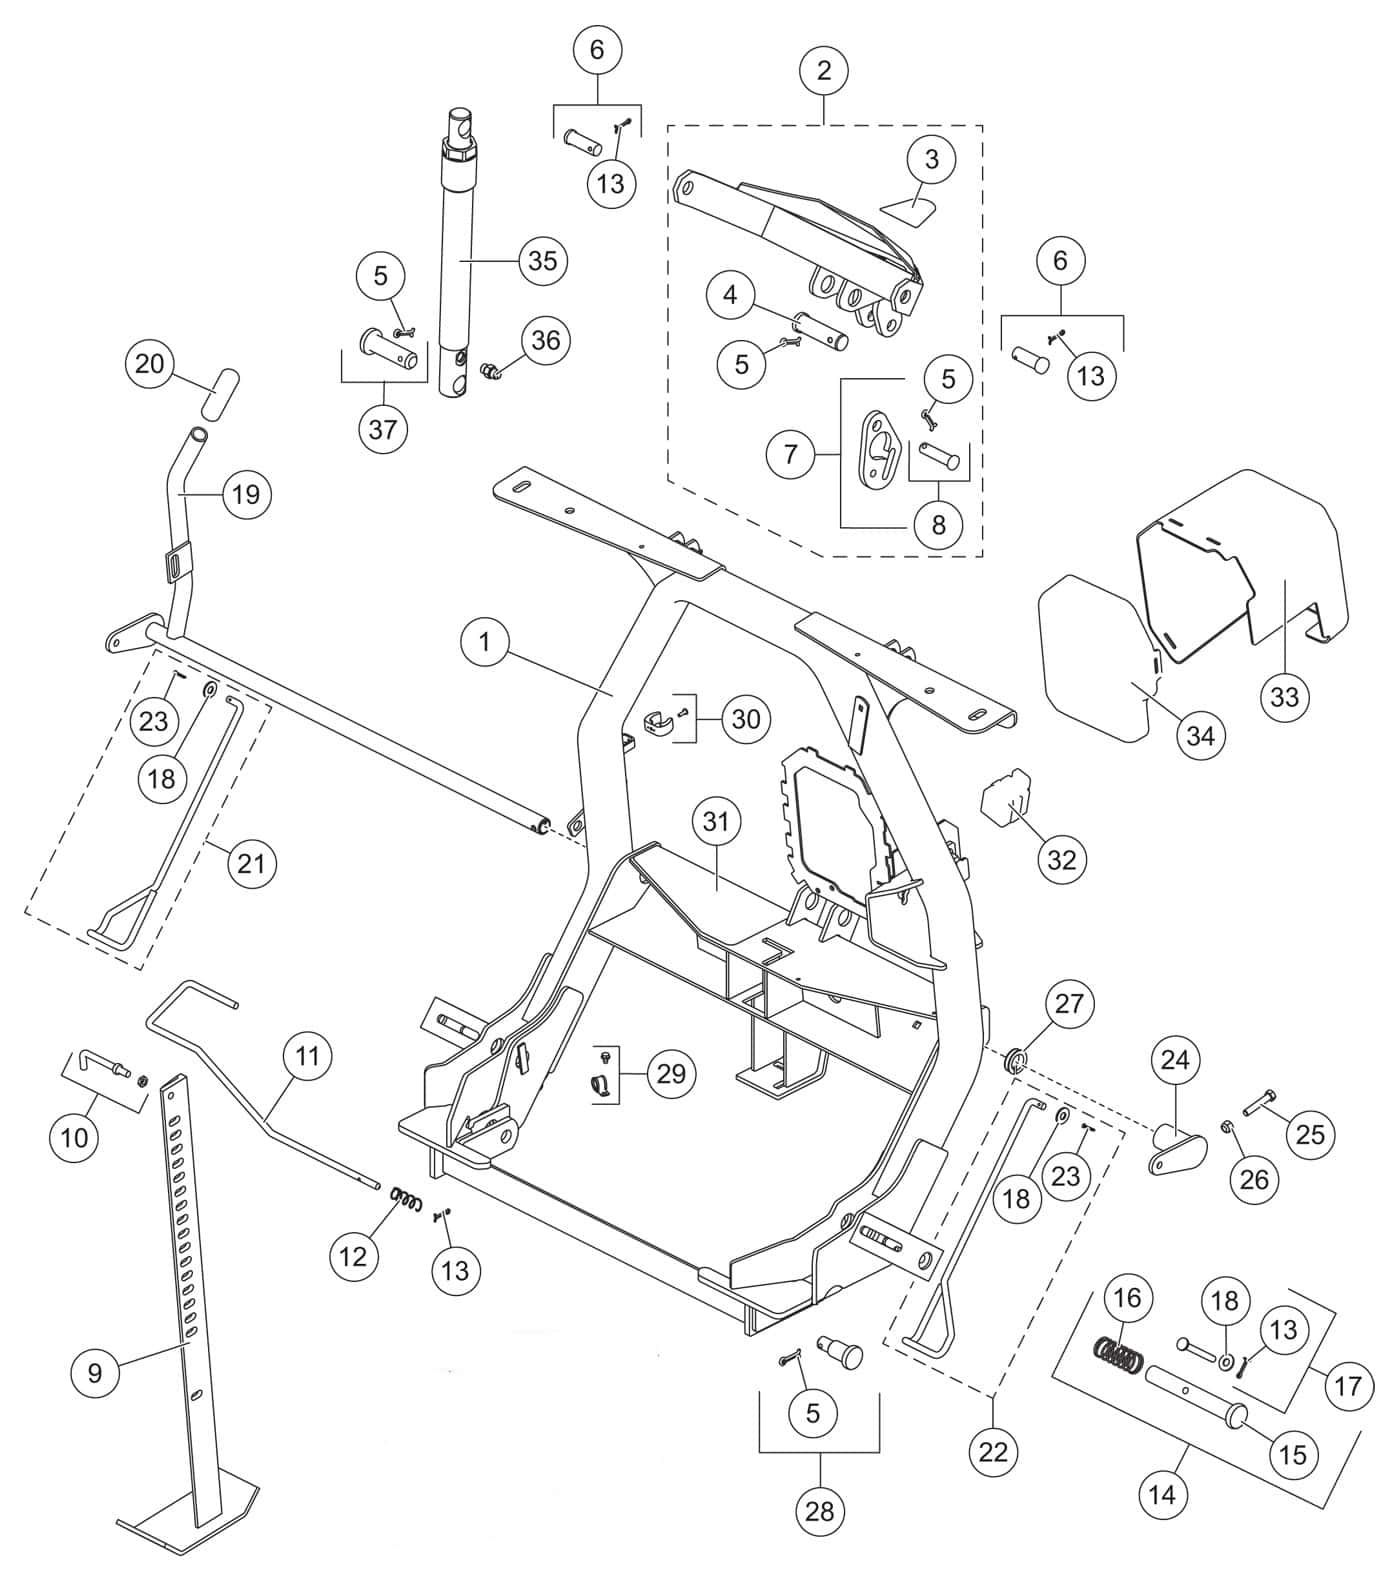 hd2hc Waltco Lift Gate Wiring Diagram on led diagram, hid kit wiring diagram, 3157 bulb diagram, polaris scrambler 50 wiring diagram, polaris ranger 500 wiring diagram, maxon lift wiring diagram, polaris sportsman 500 wiring diagram, 3157 socket wiring diagram, lift gate solenoid wire diagram,